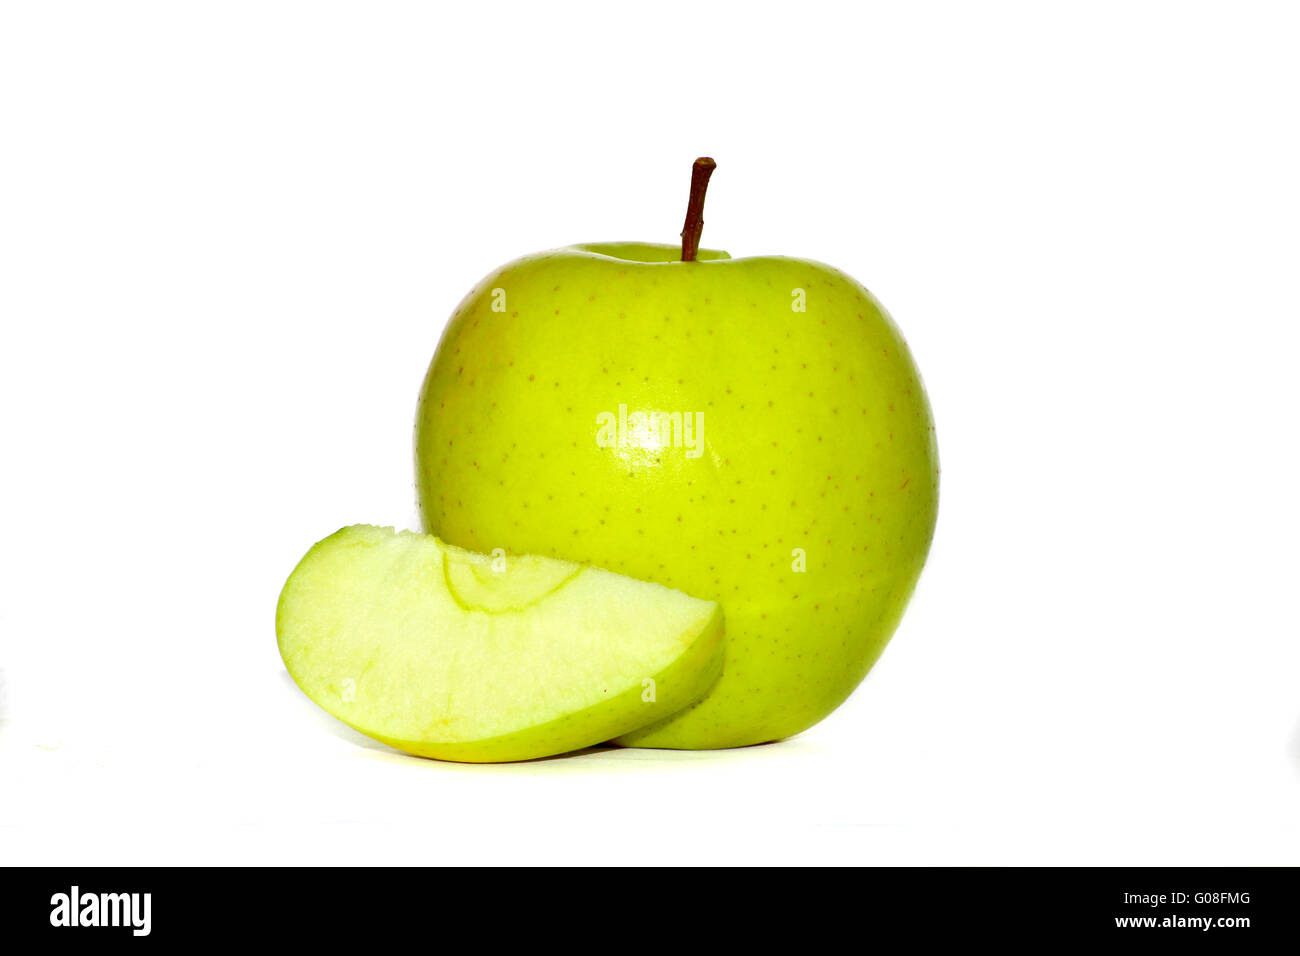 Apple on withe background - Stock Image